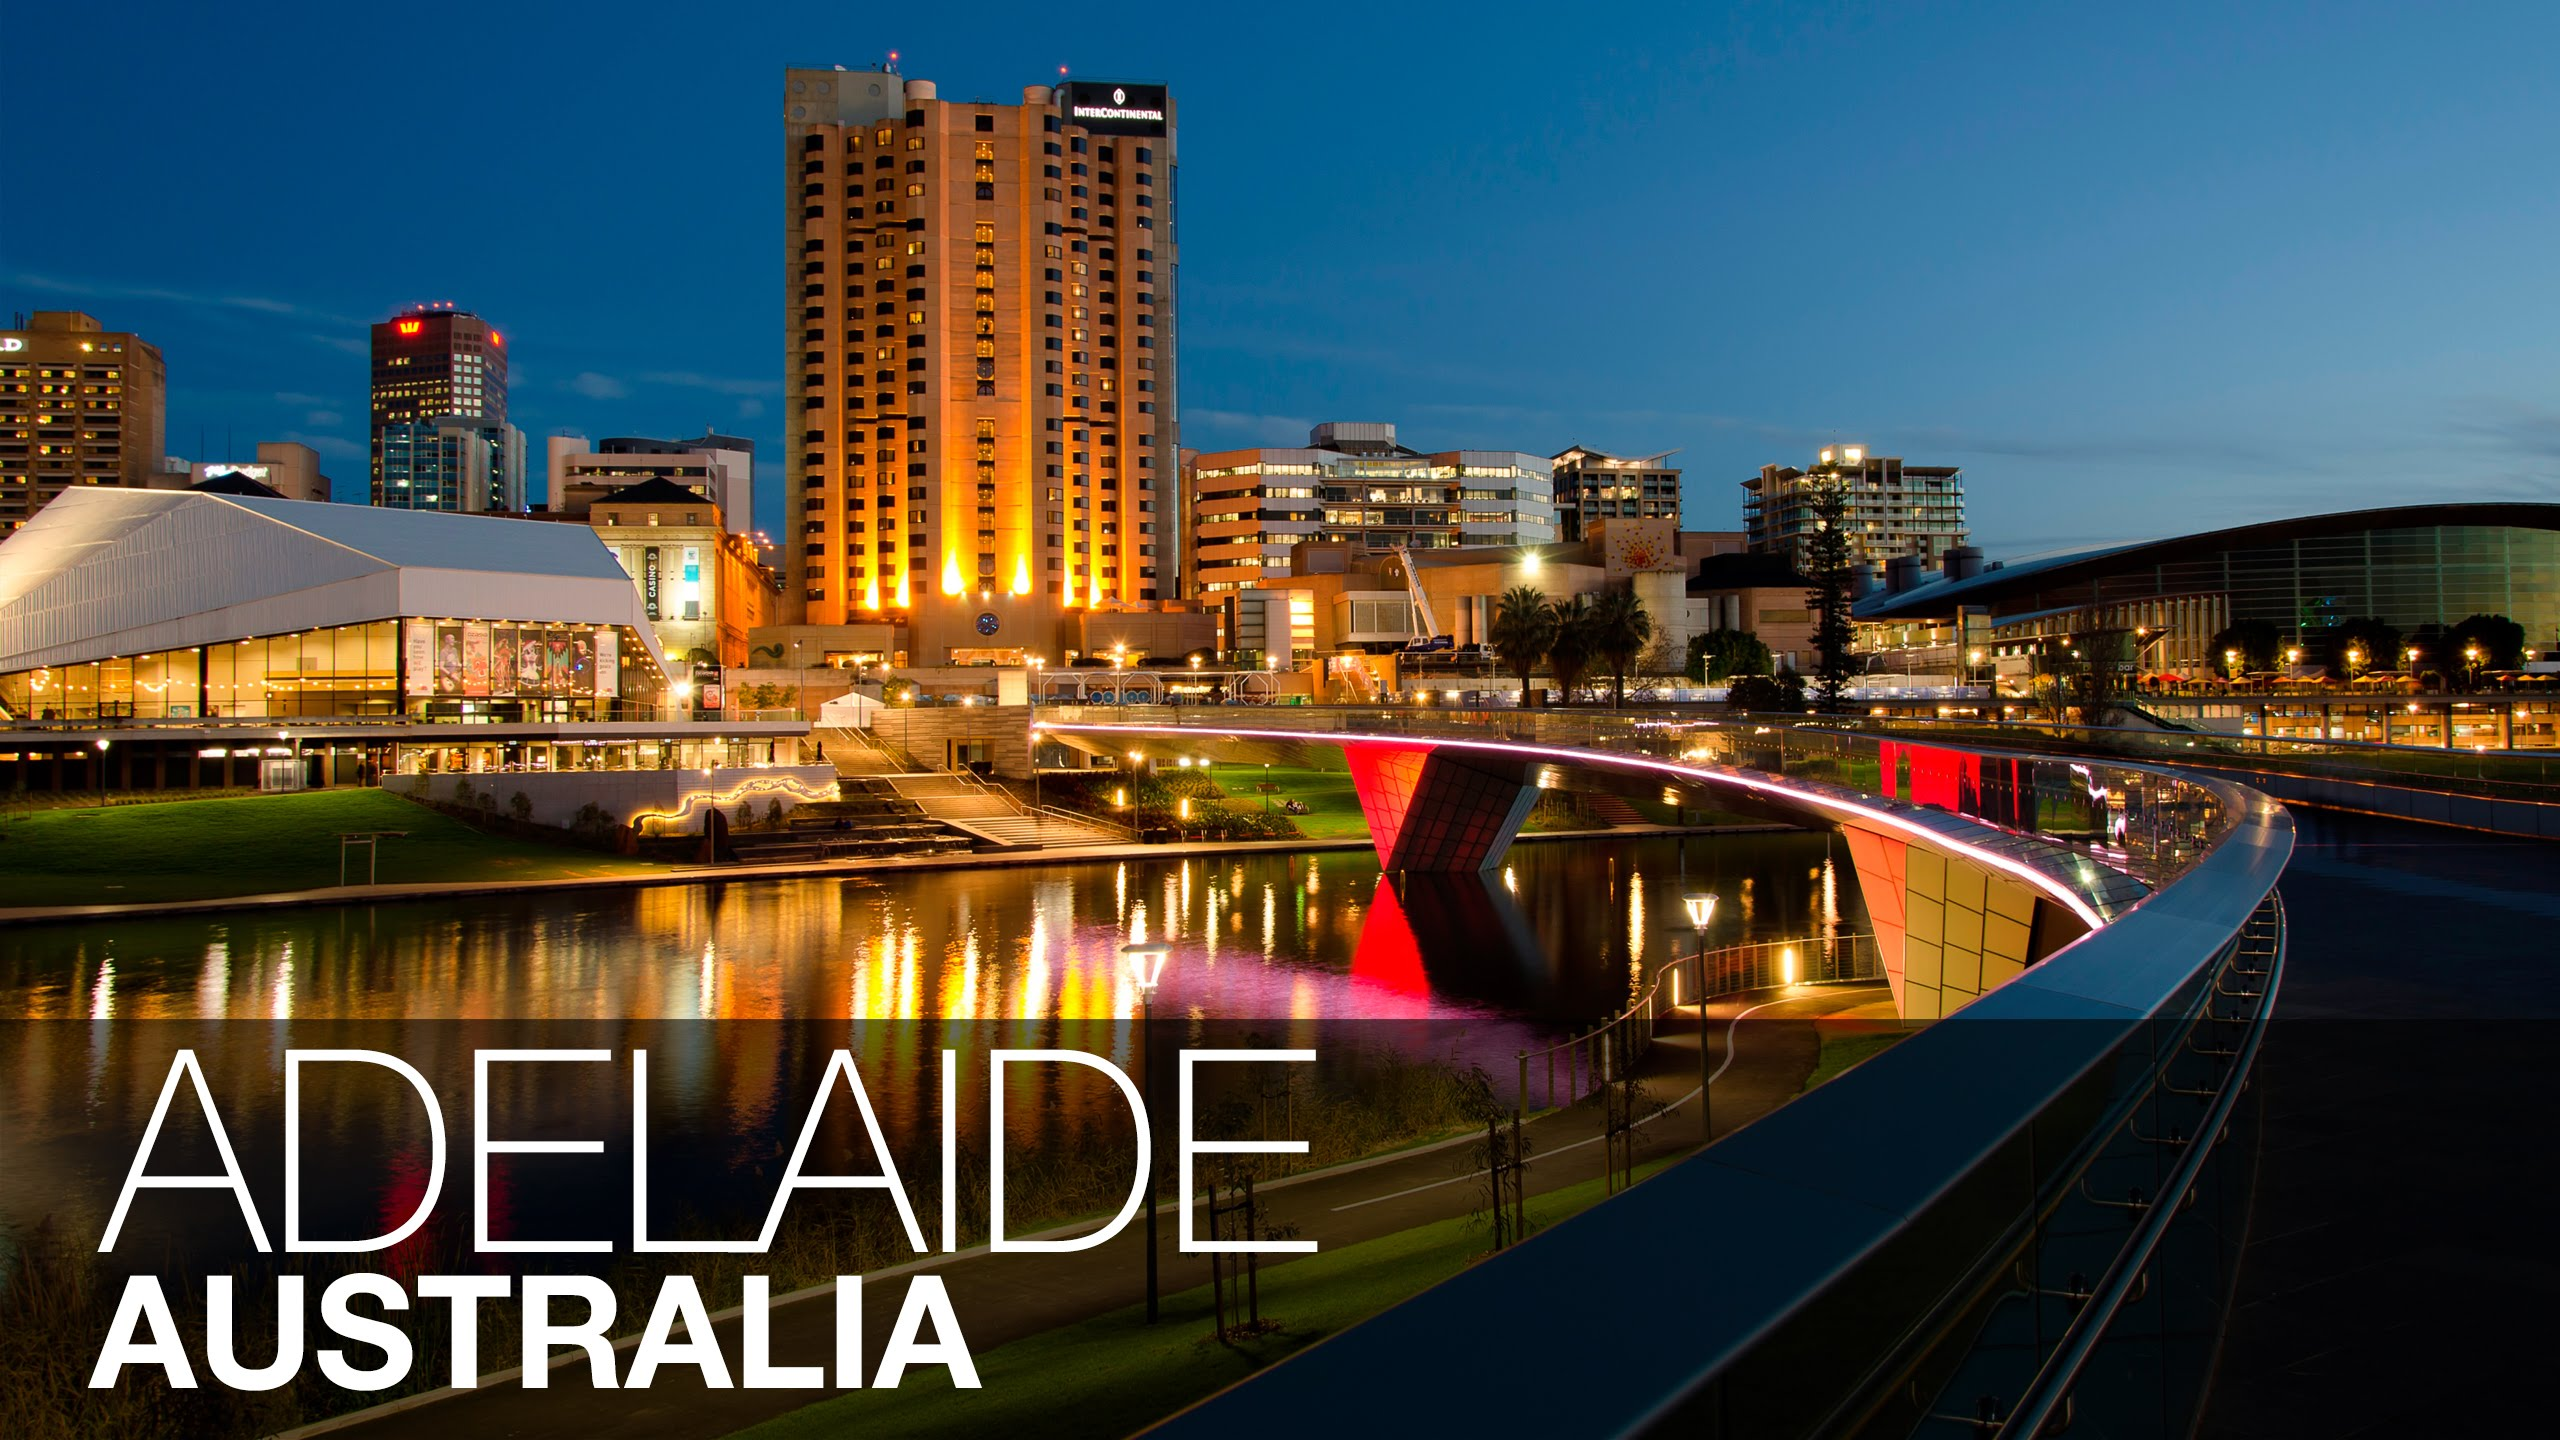 New office in South Australia – The gateway to your Australian dream